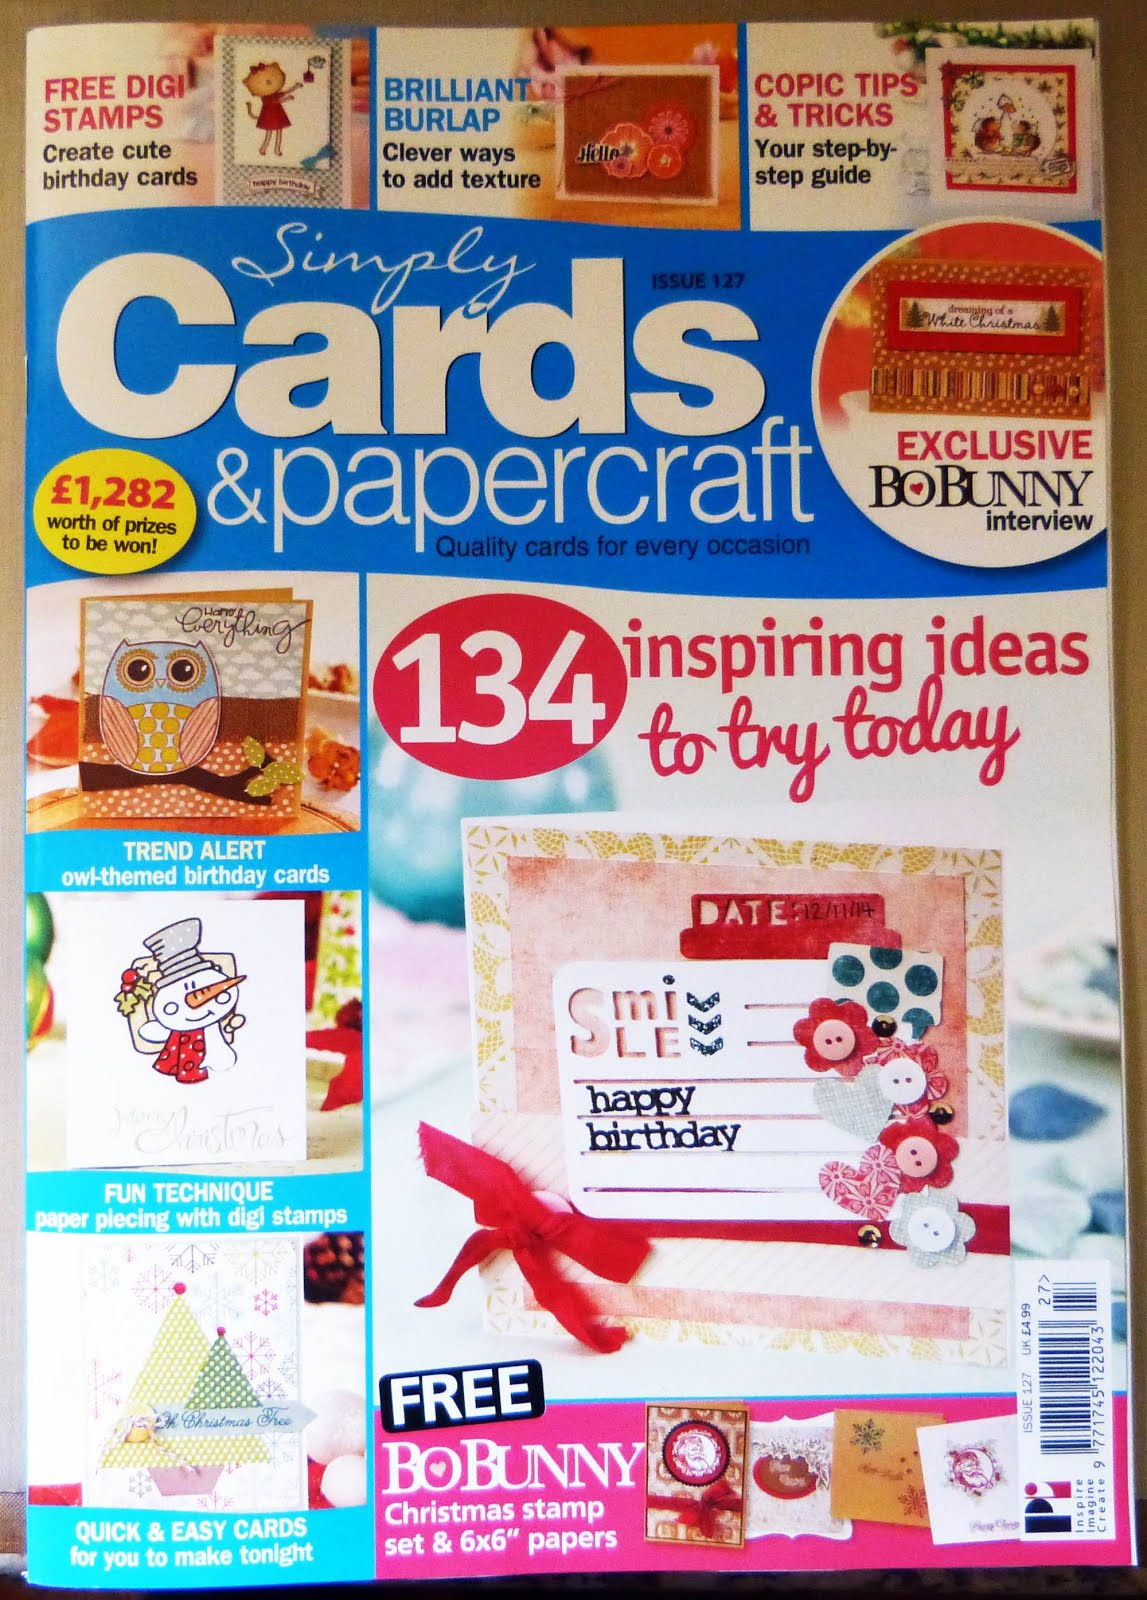 Published Simply Cards & Papercraft Issue 127